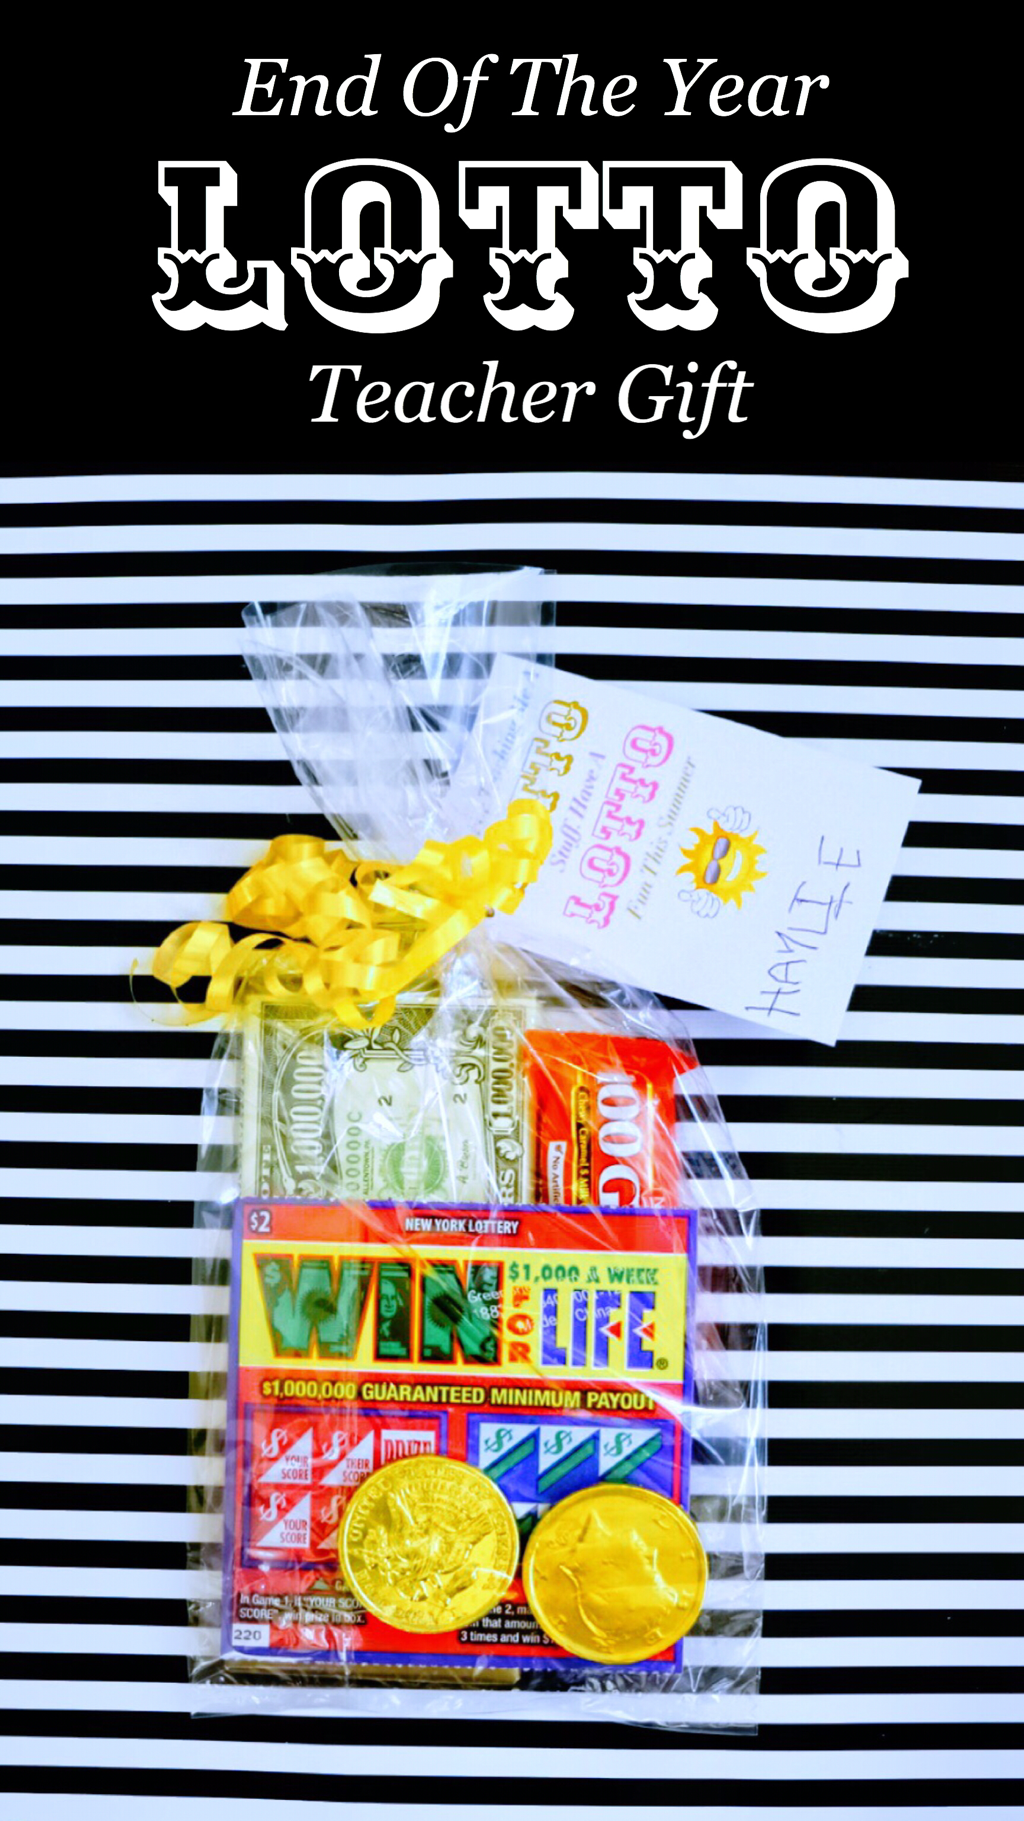 End Of The Year LOTTO Teacher Gift